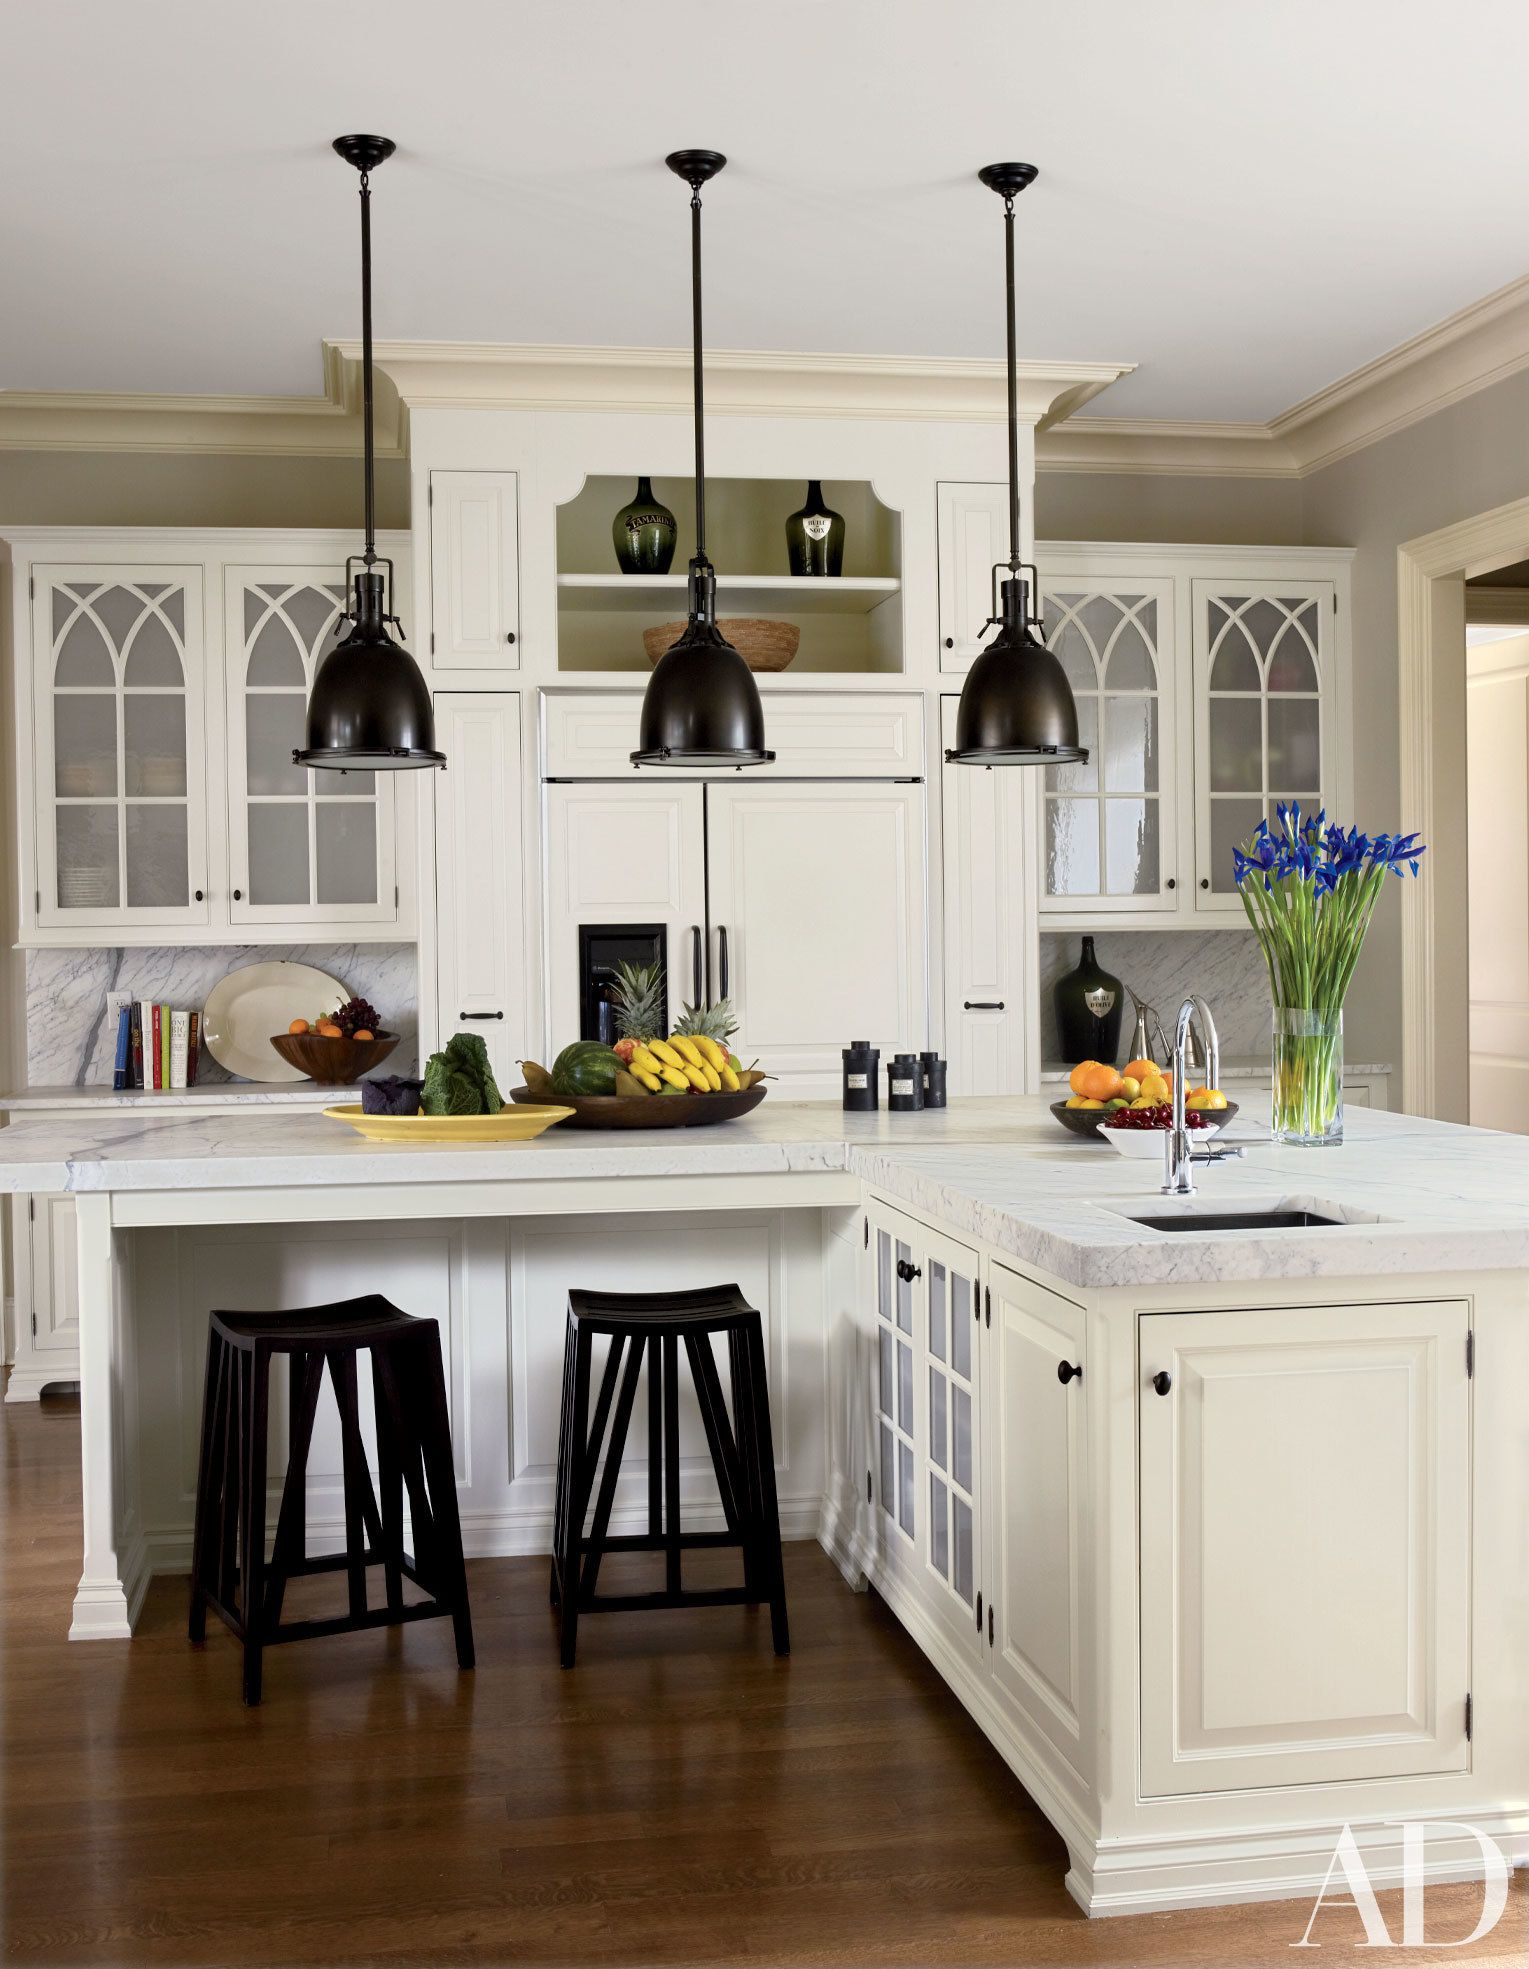 15 Spectacular Before And After Kitchen Makeovers